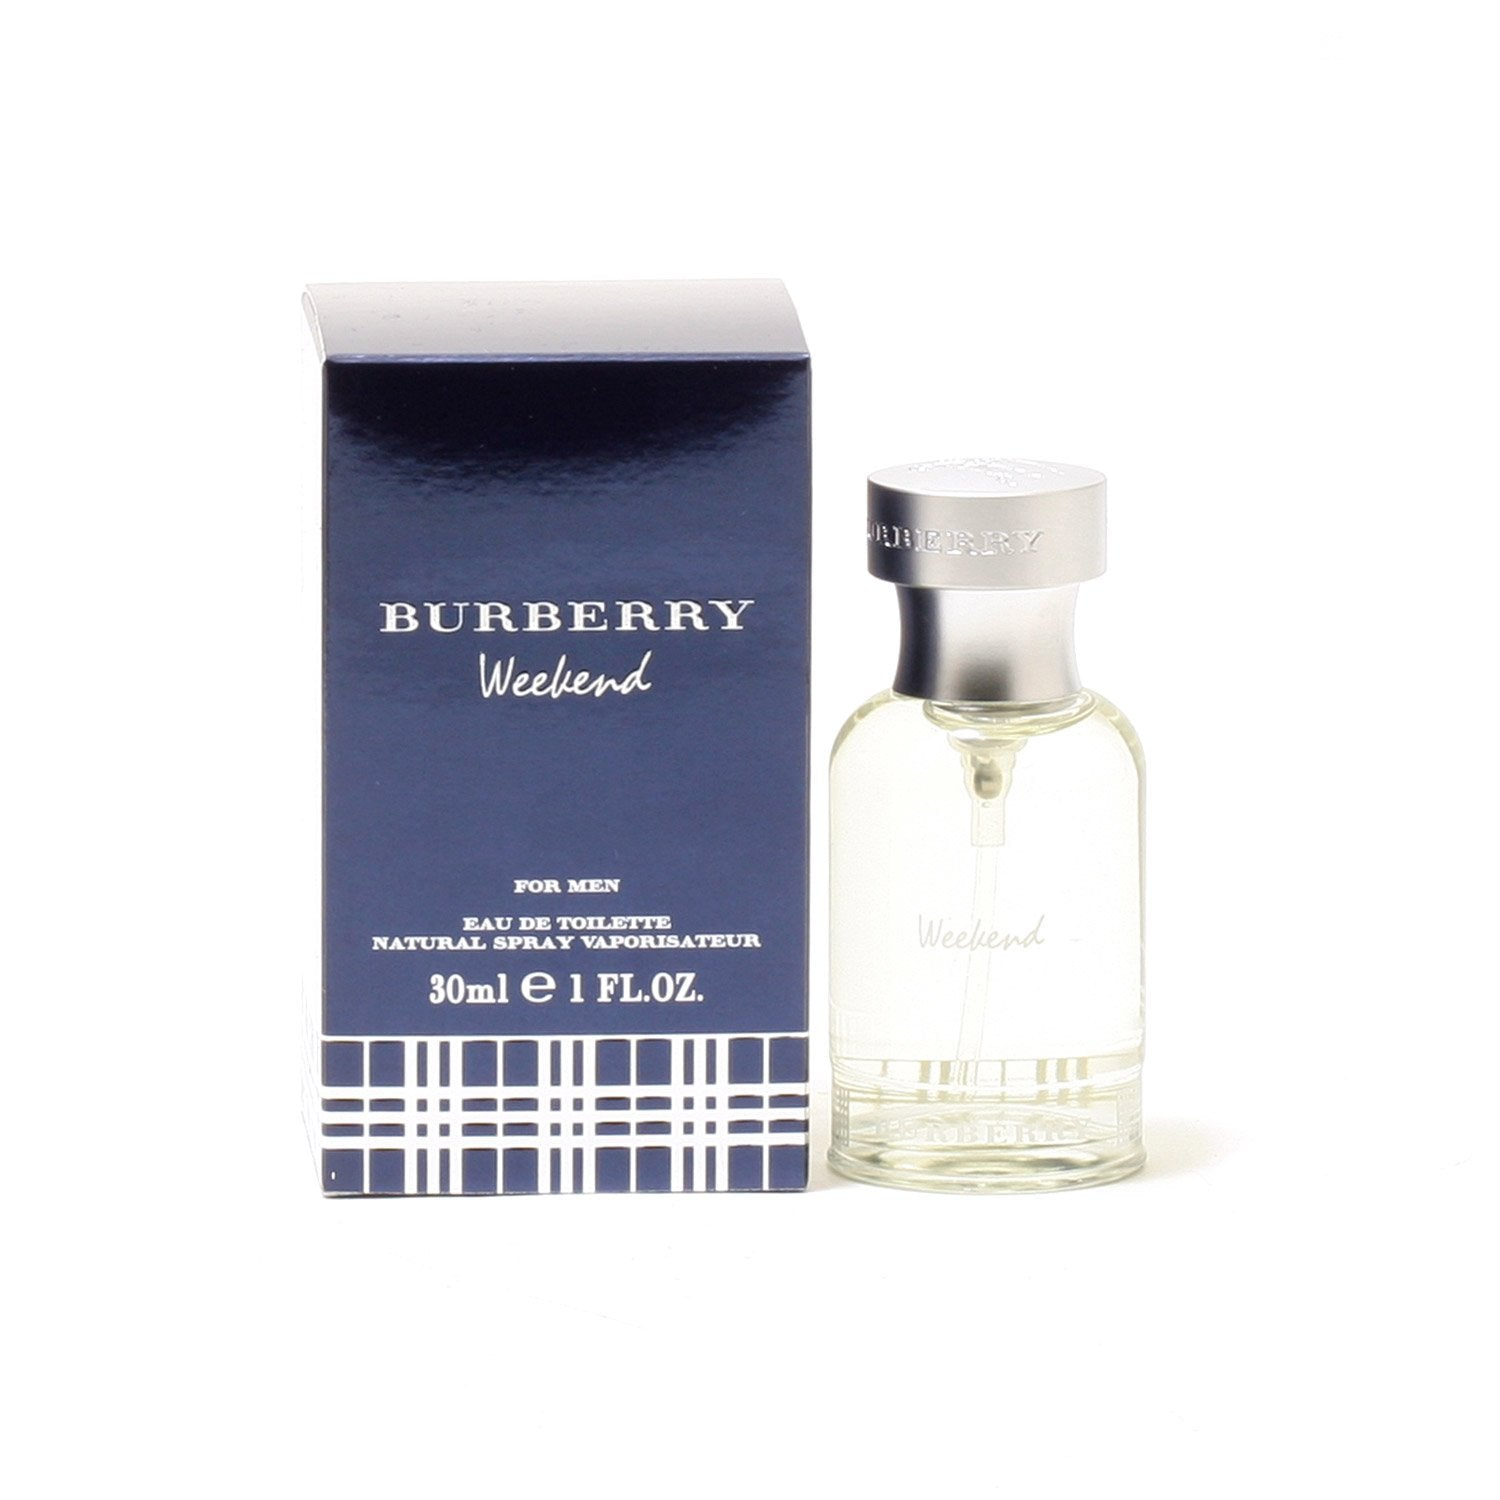 Cologne - BURBERRY WEEKEND FOR MEN - EAU DE TOILETTE SPRAY